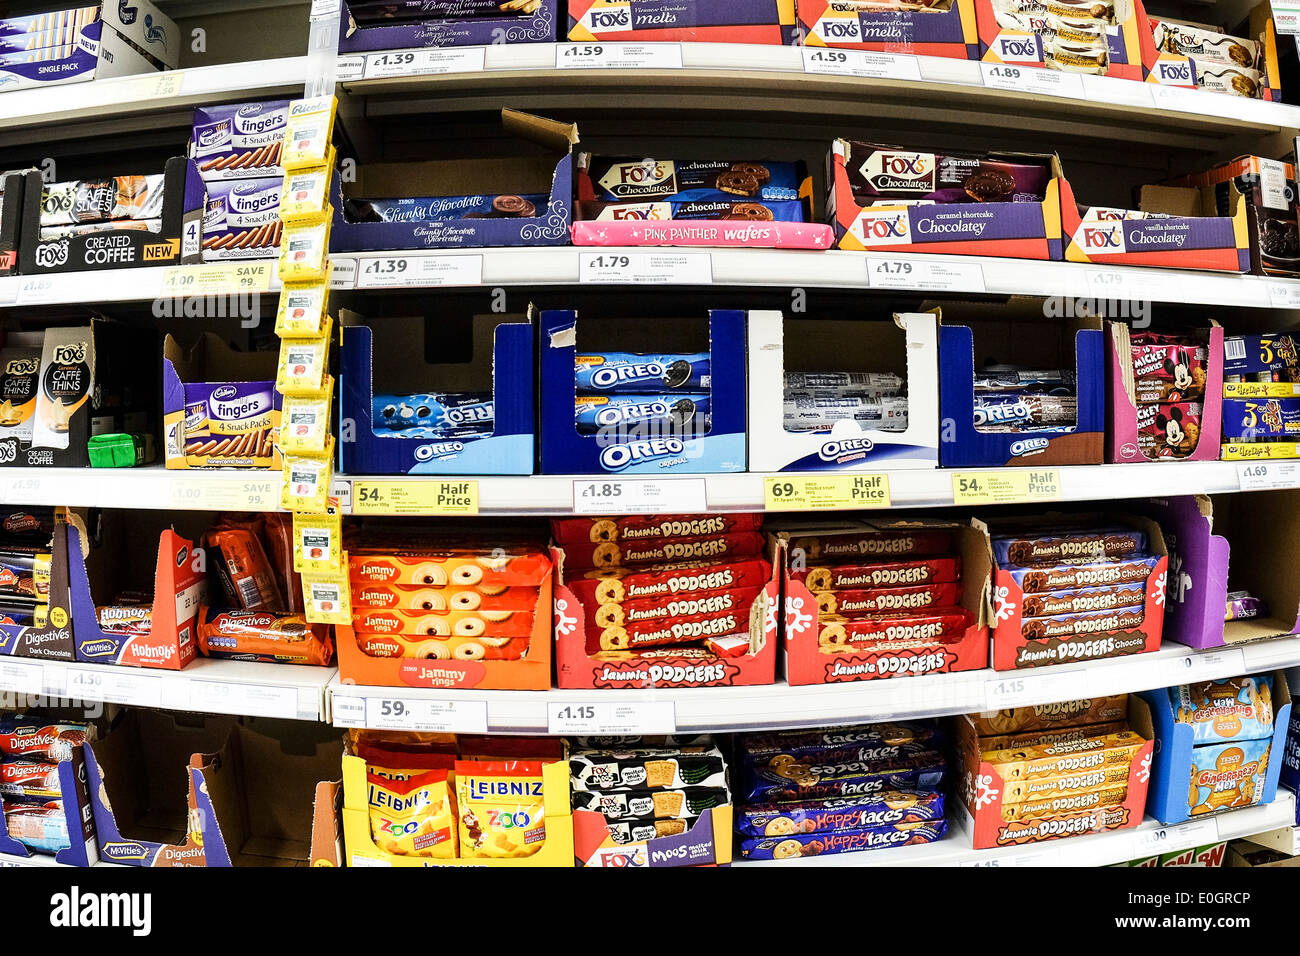 Shelves of packets of biscuits on display in a Tesco supermarket. Stock Photo